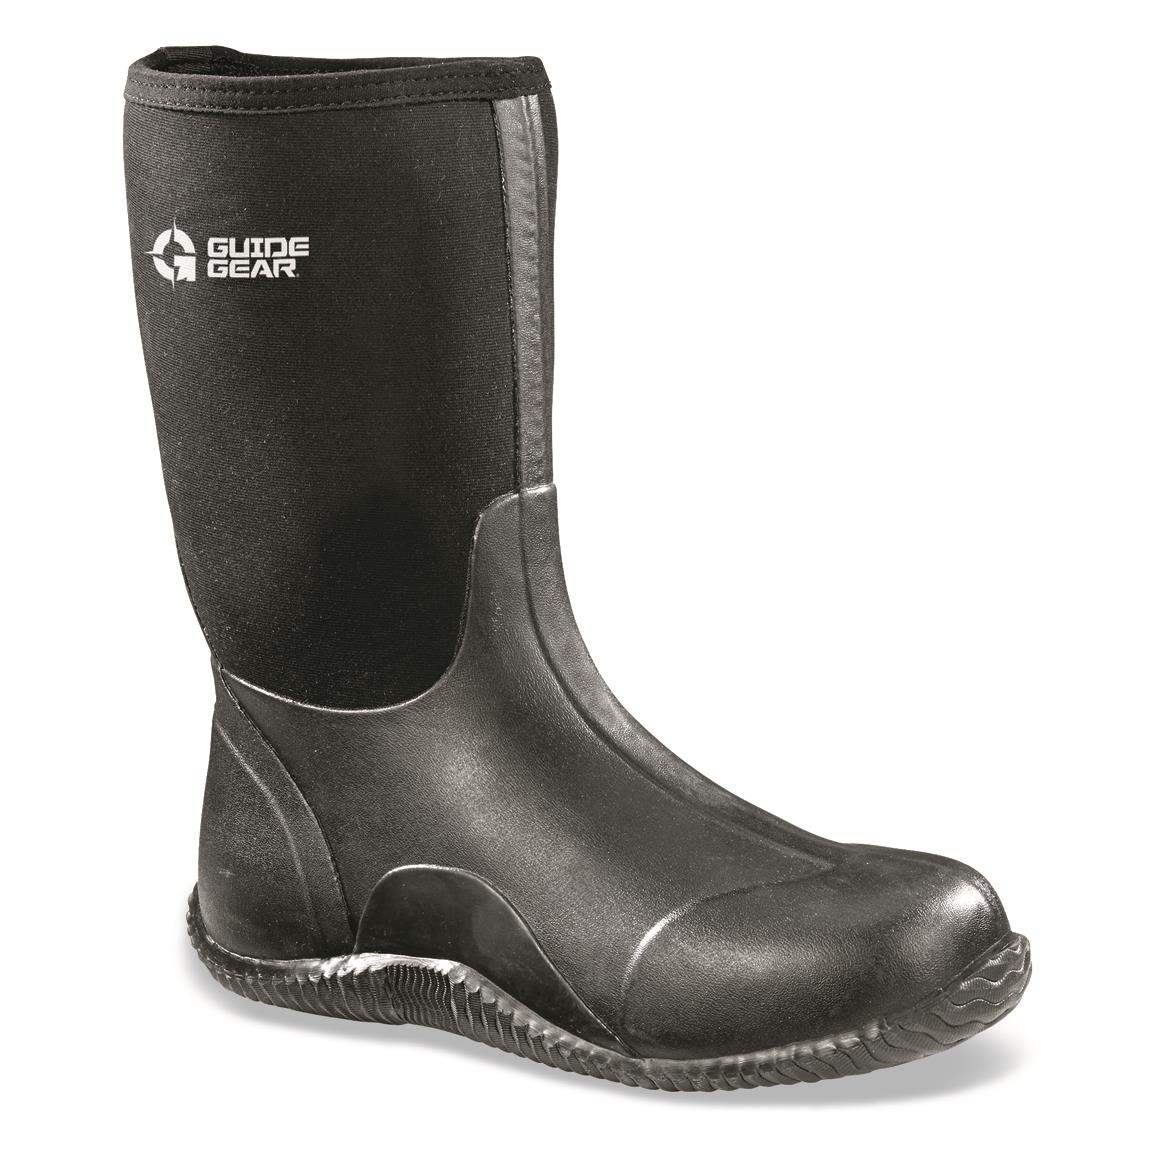 Guide Gear Men's Mid Bogger Waterproof Rubber Boots, Black